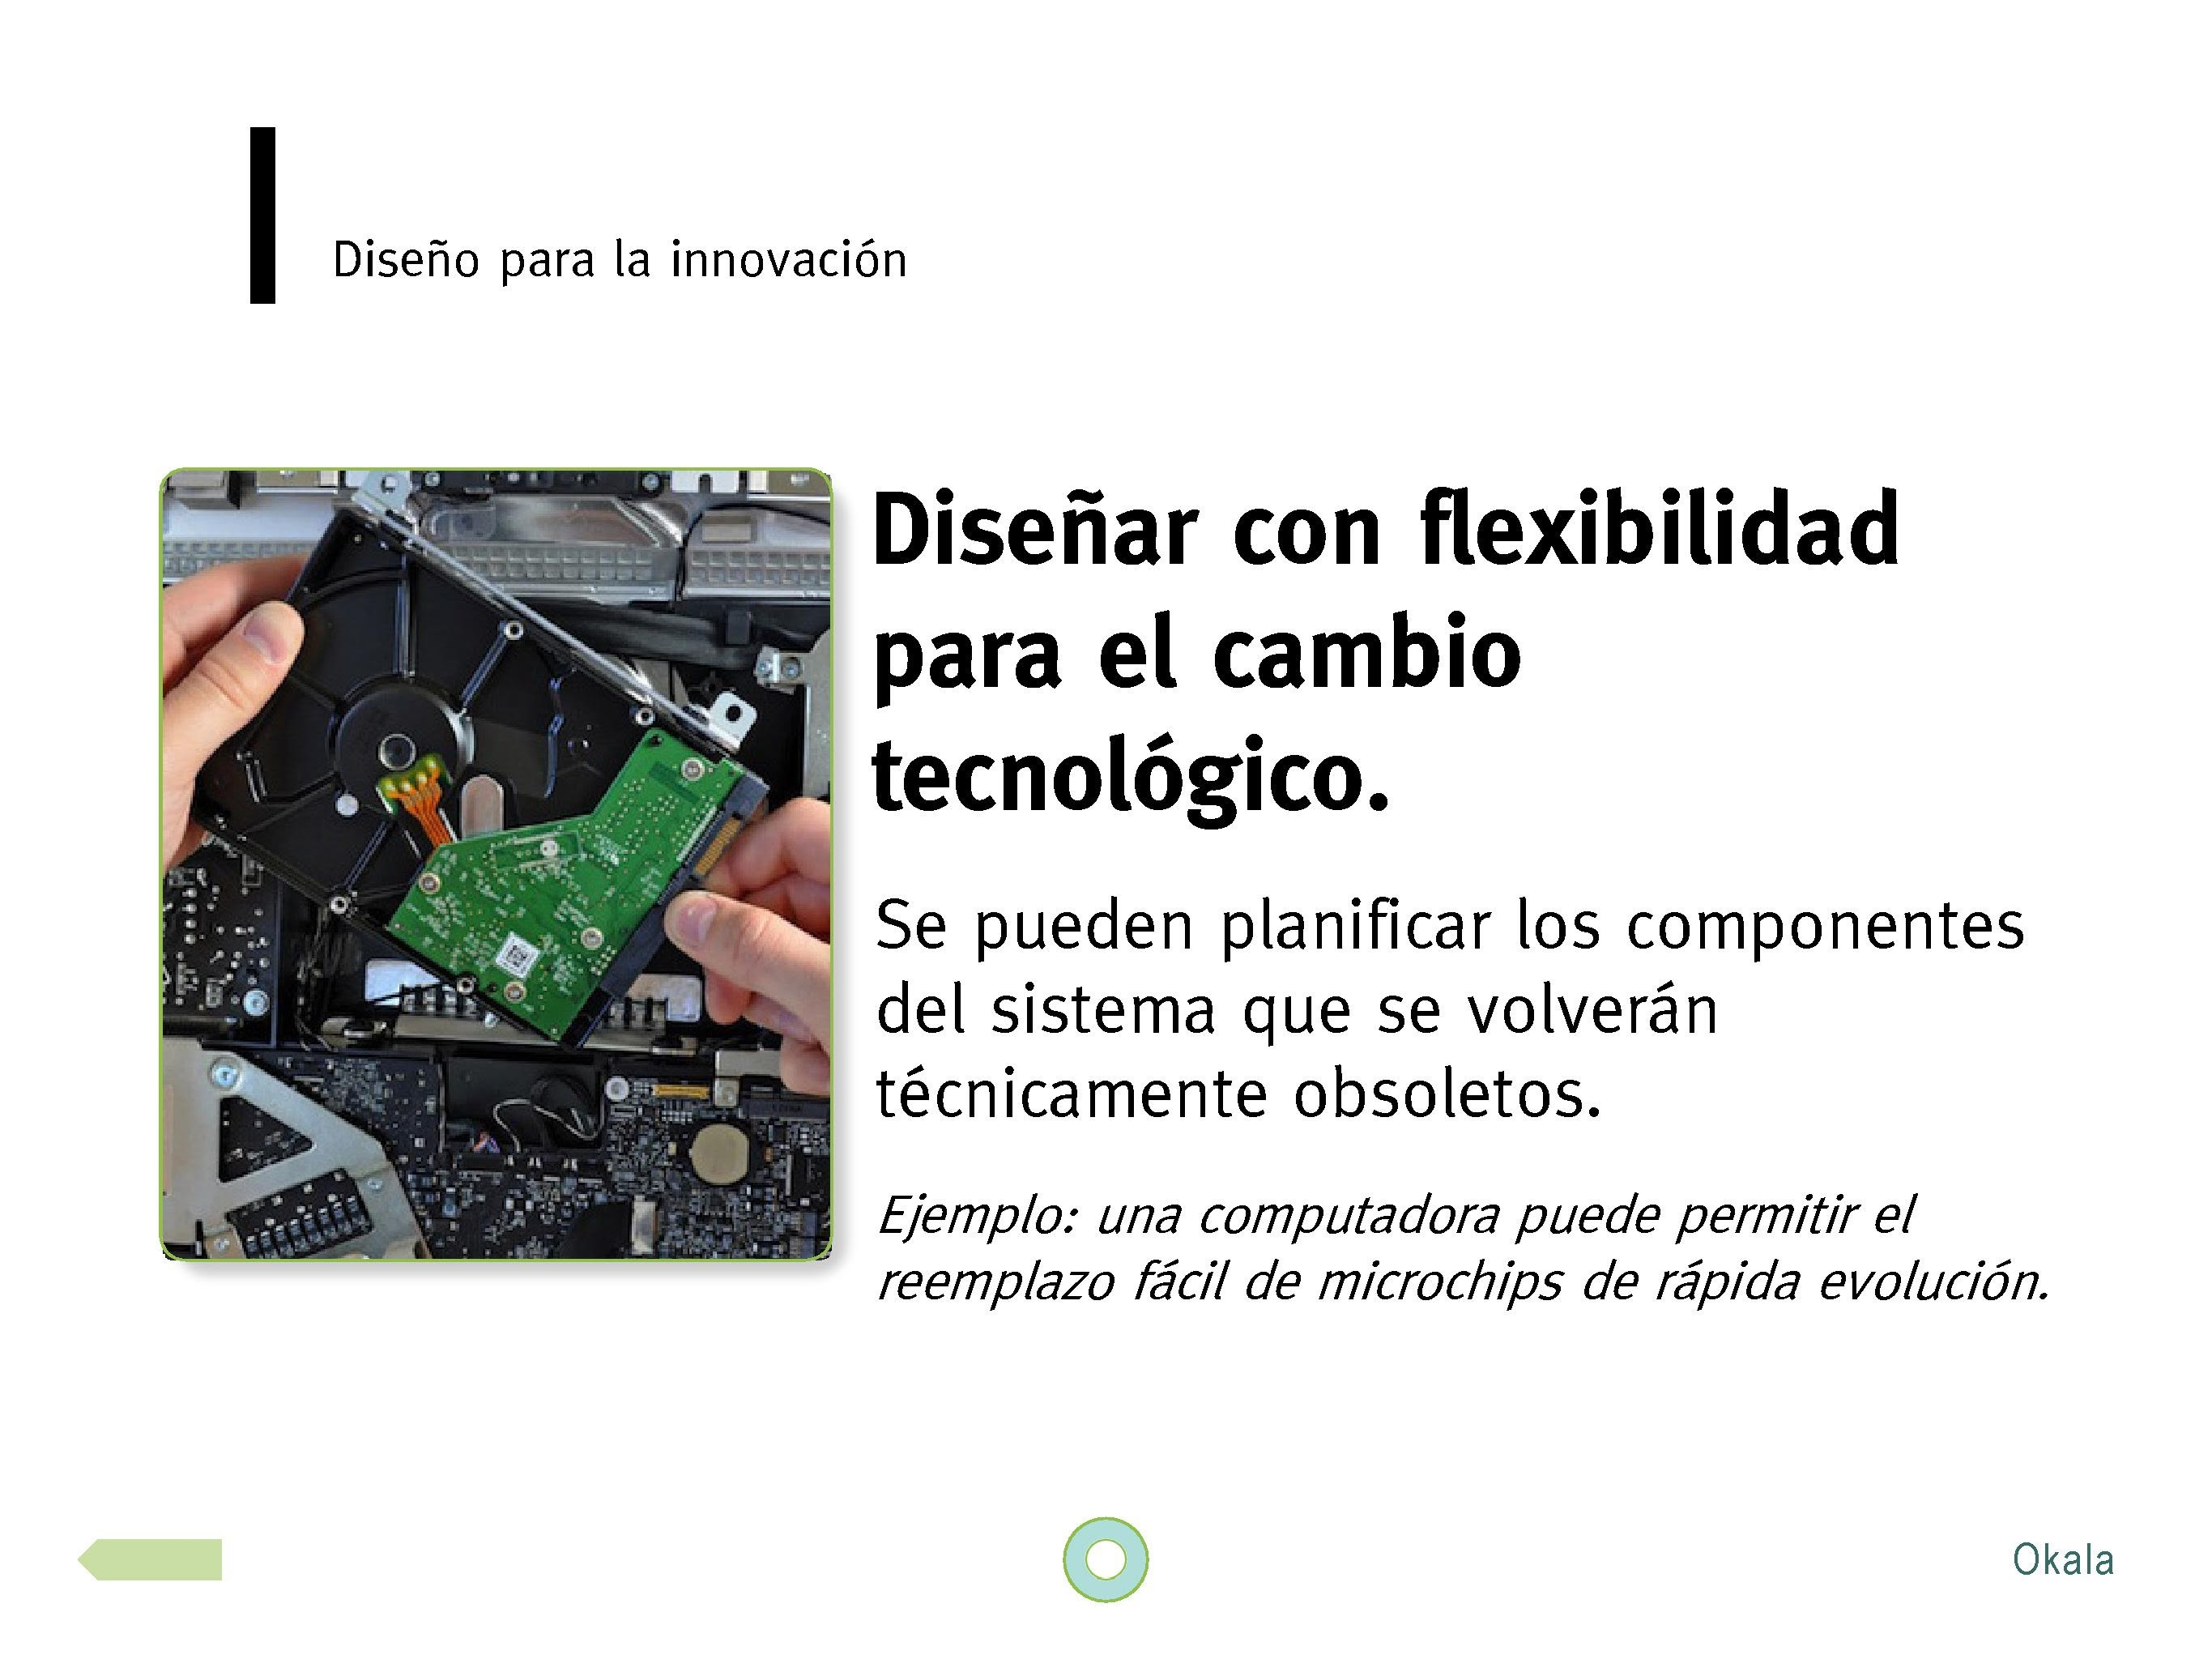 okala-ecodesign-strategy-guide-2012-spanish.new_page_02-1